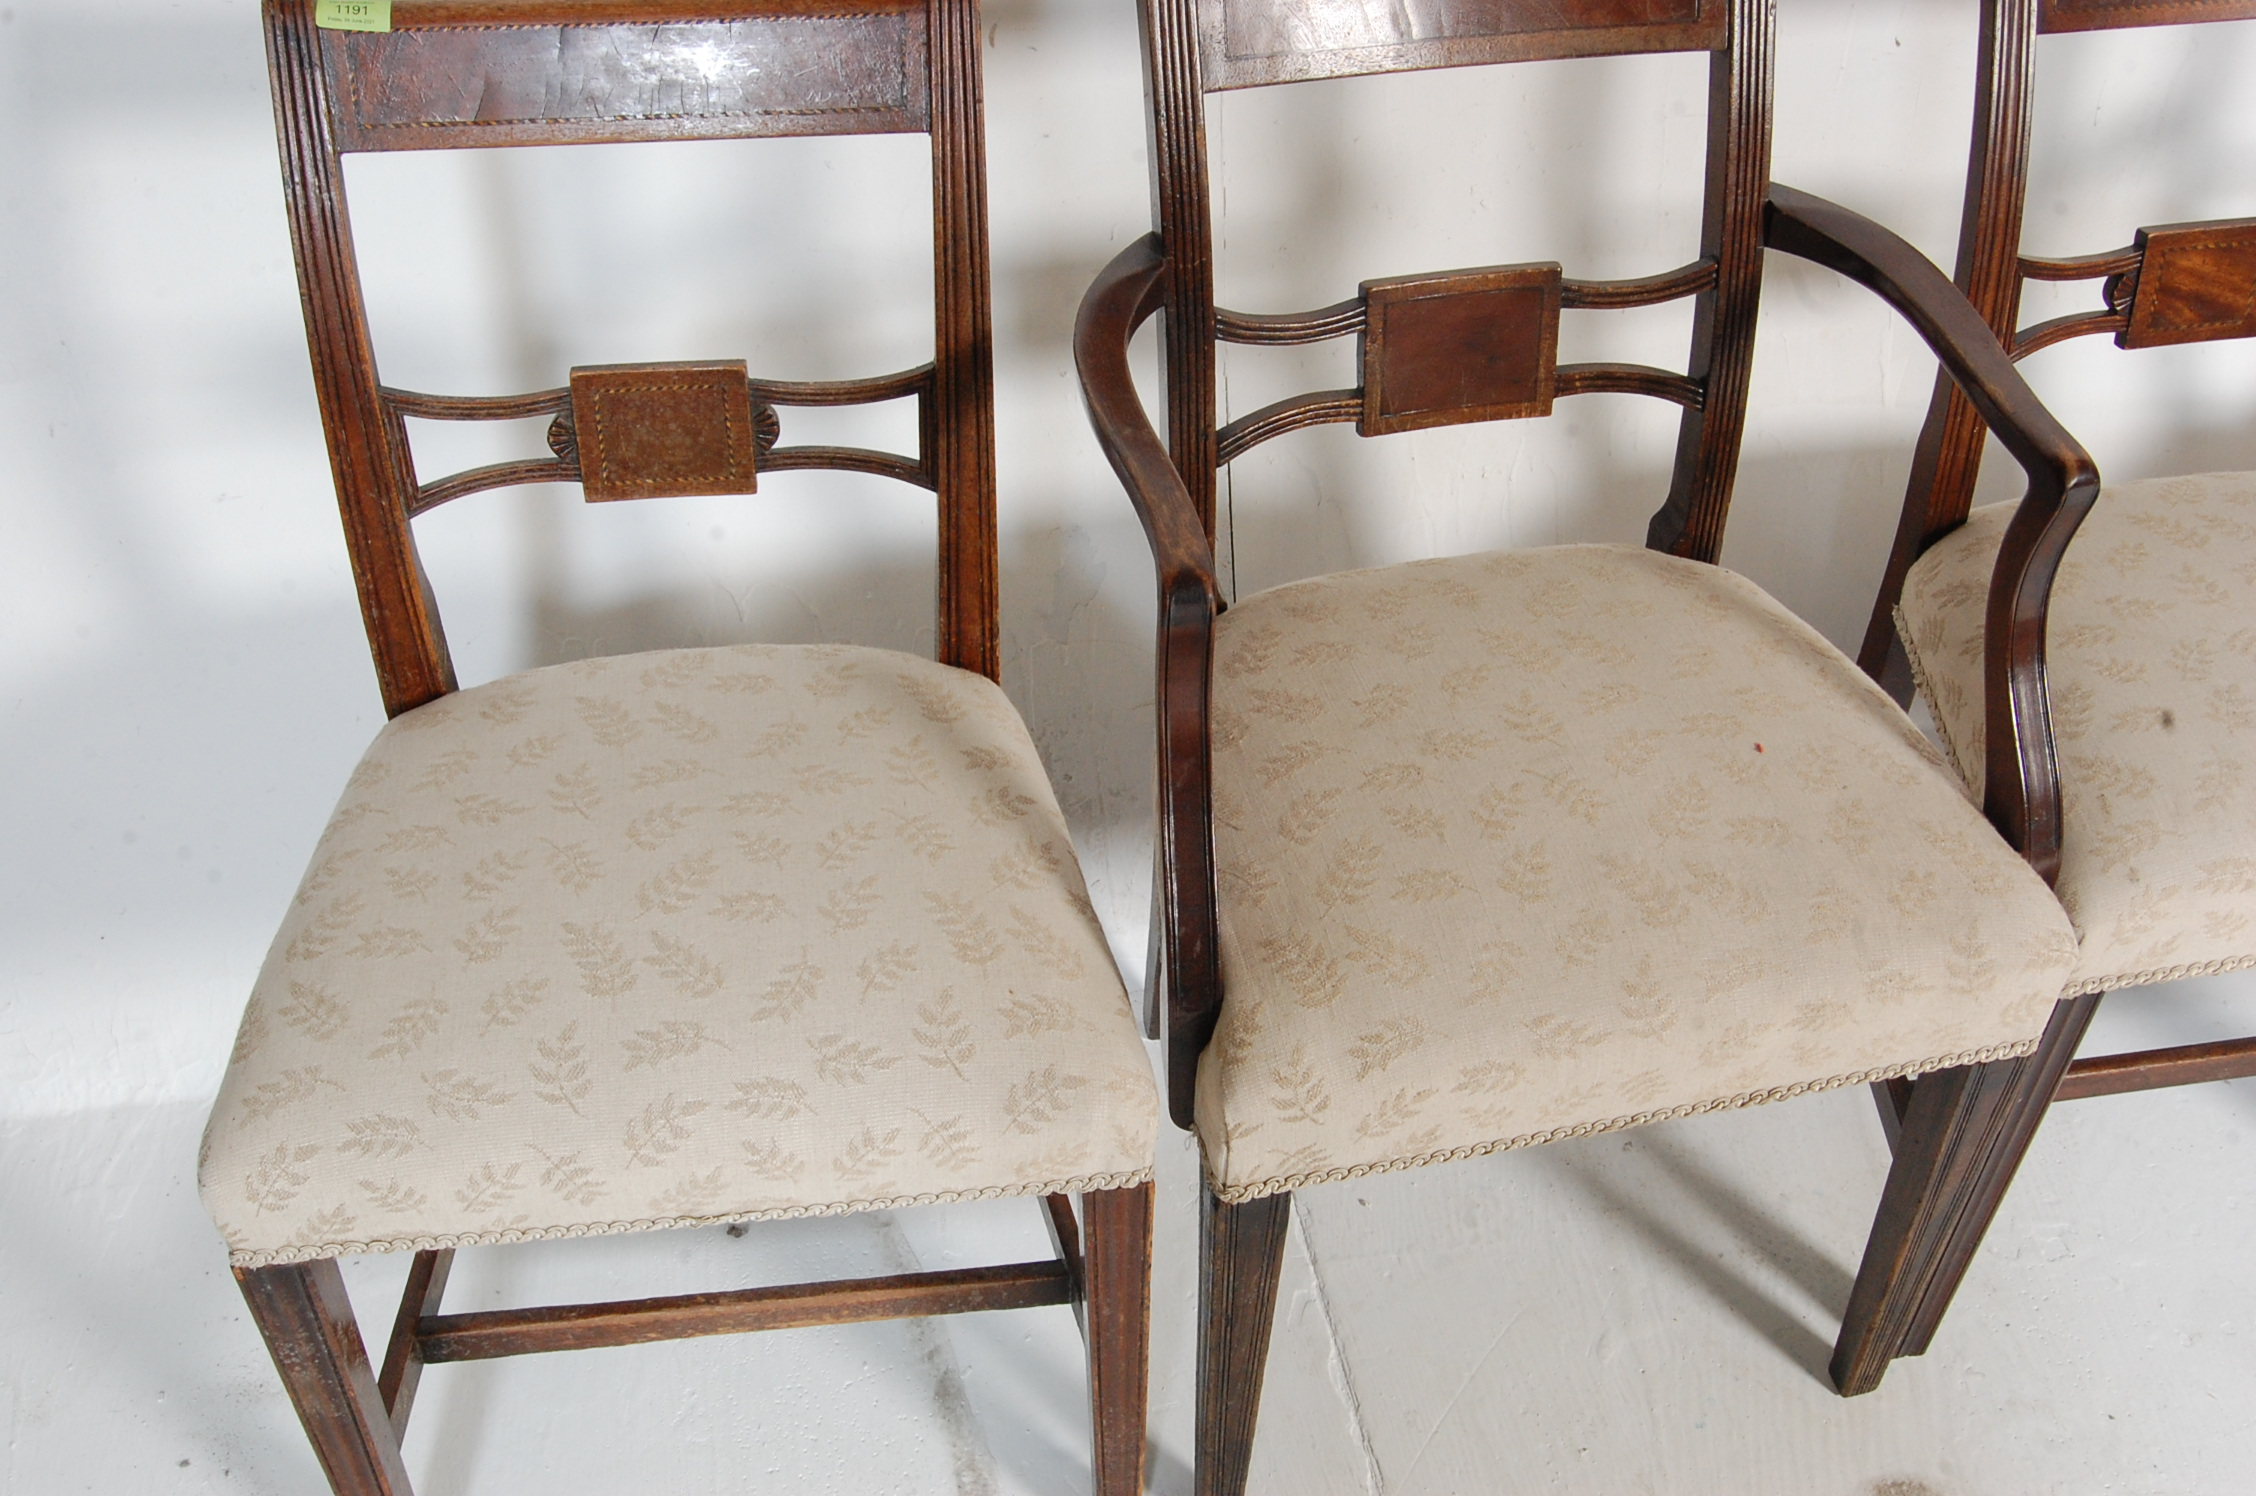 AN ANTIQUE EDWARDIAN REGENCY REVIVAL HARLEQUIN SET OF SIX CHAIRS - Image 3 of 7